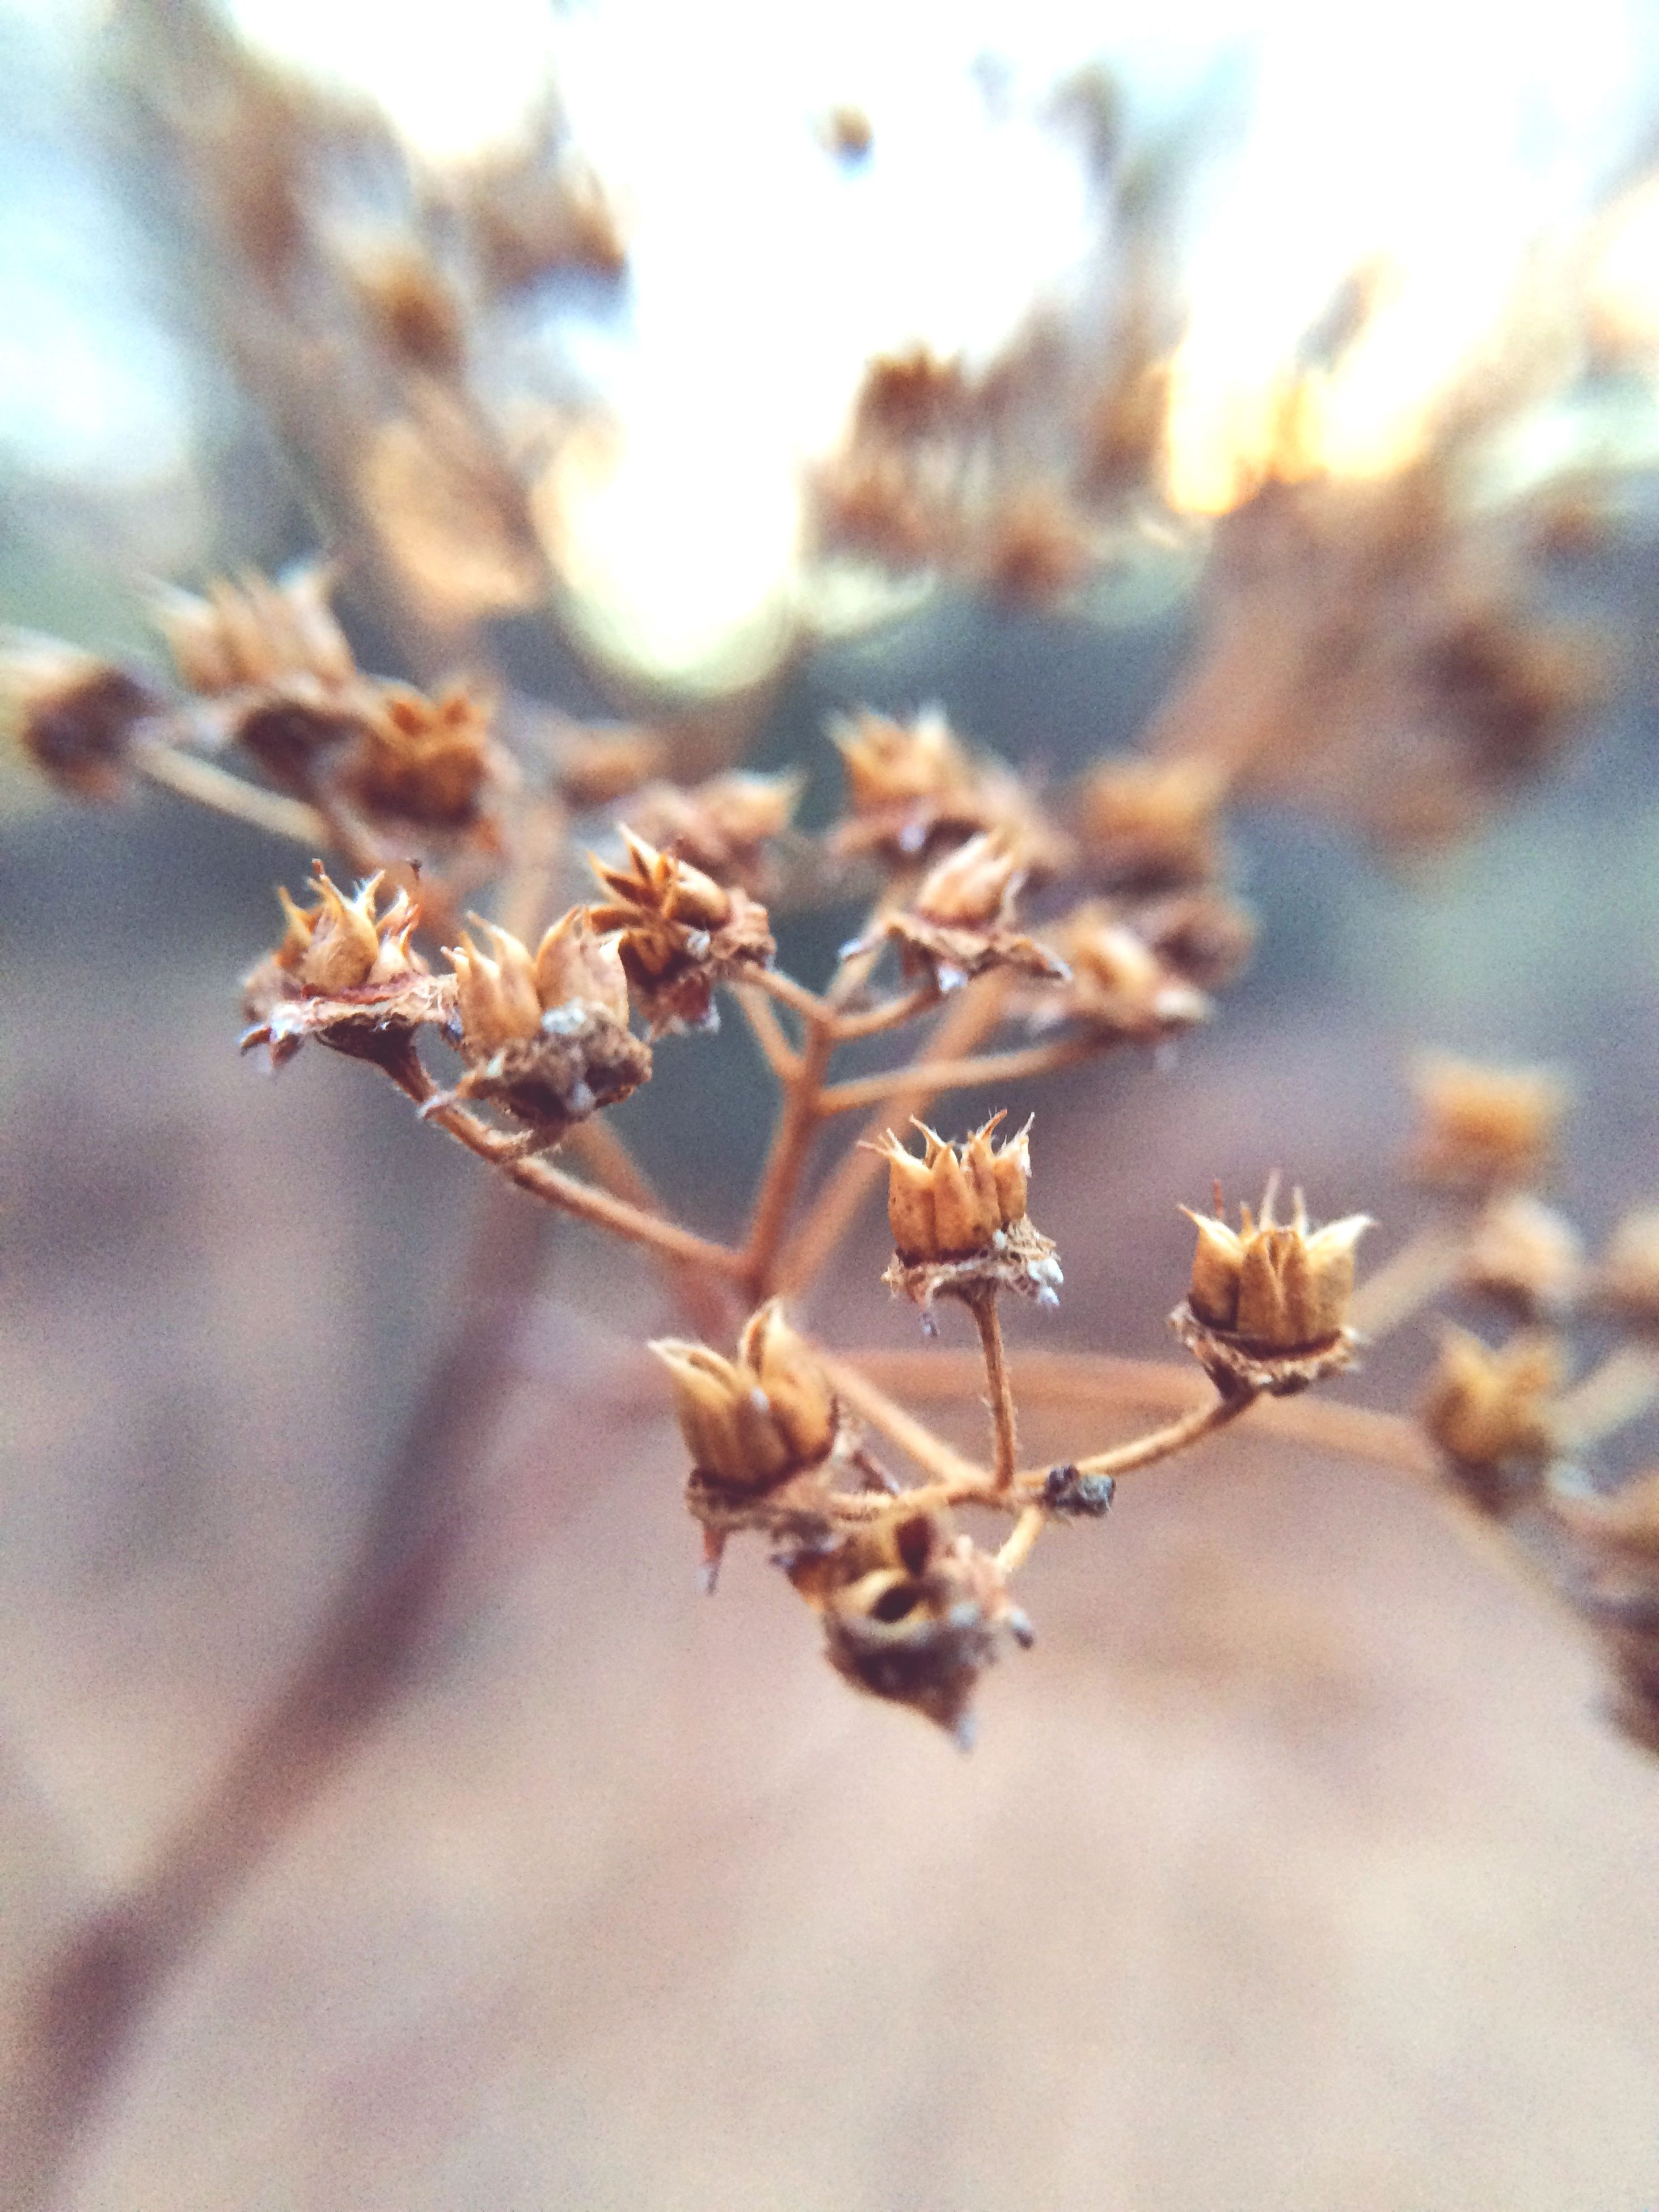 focus on foreground, growth, flower, close-up, nature, fragility, selective focus, plant, freshness, beauty in nature, branch, dry, stem, bud, outdoors, tranquility, twig, sunlight, day, tree